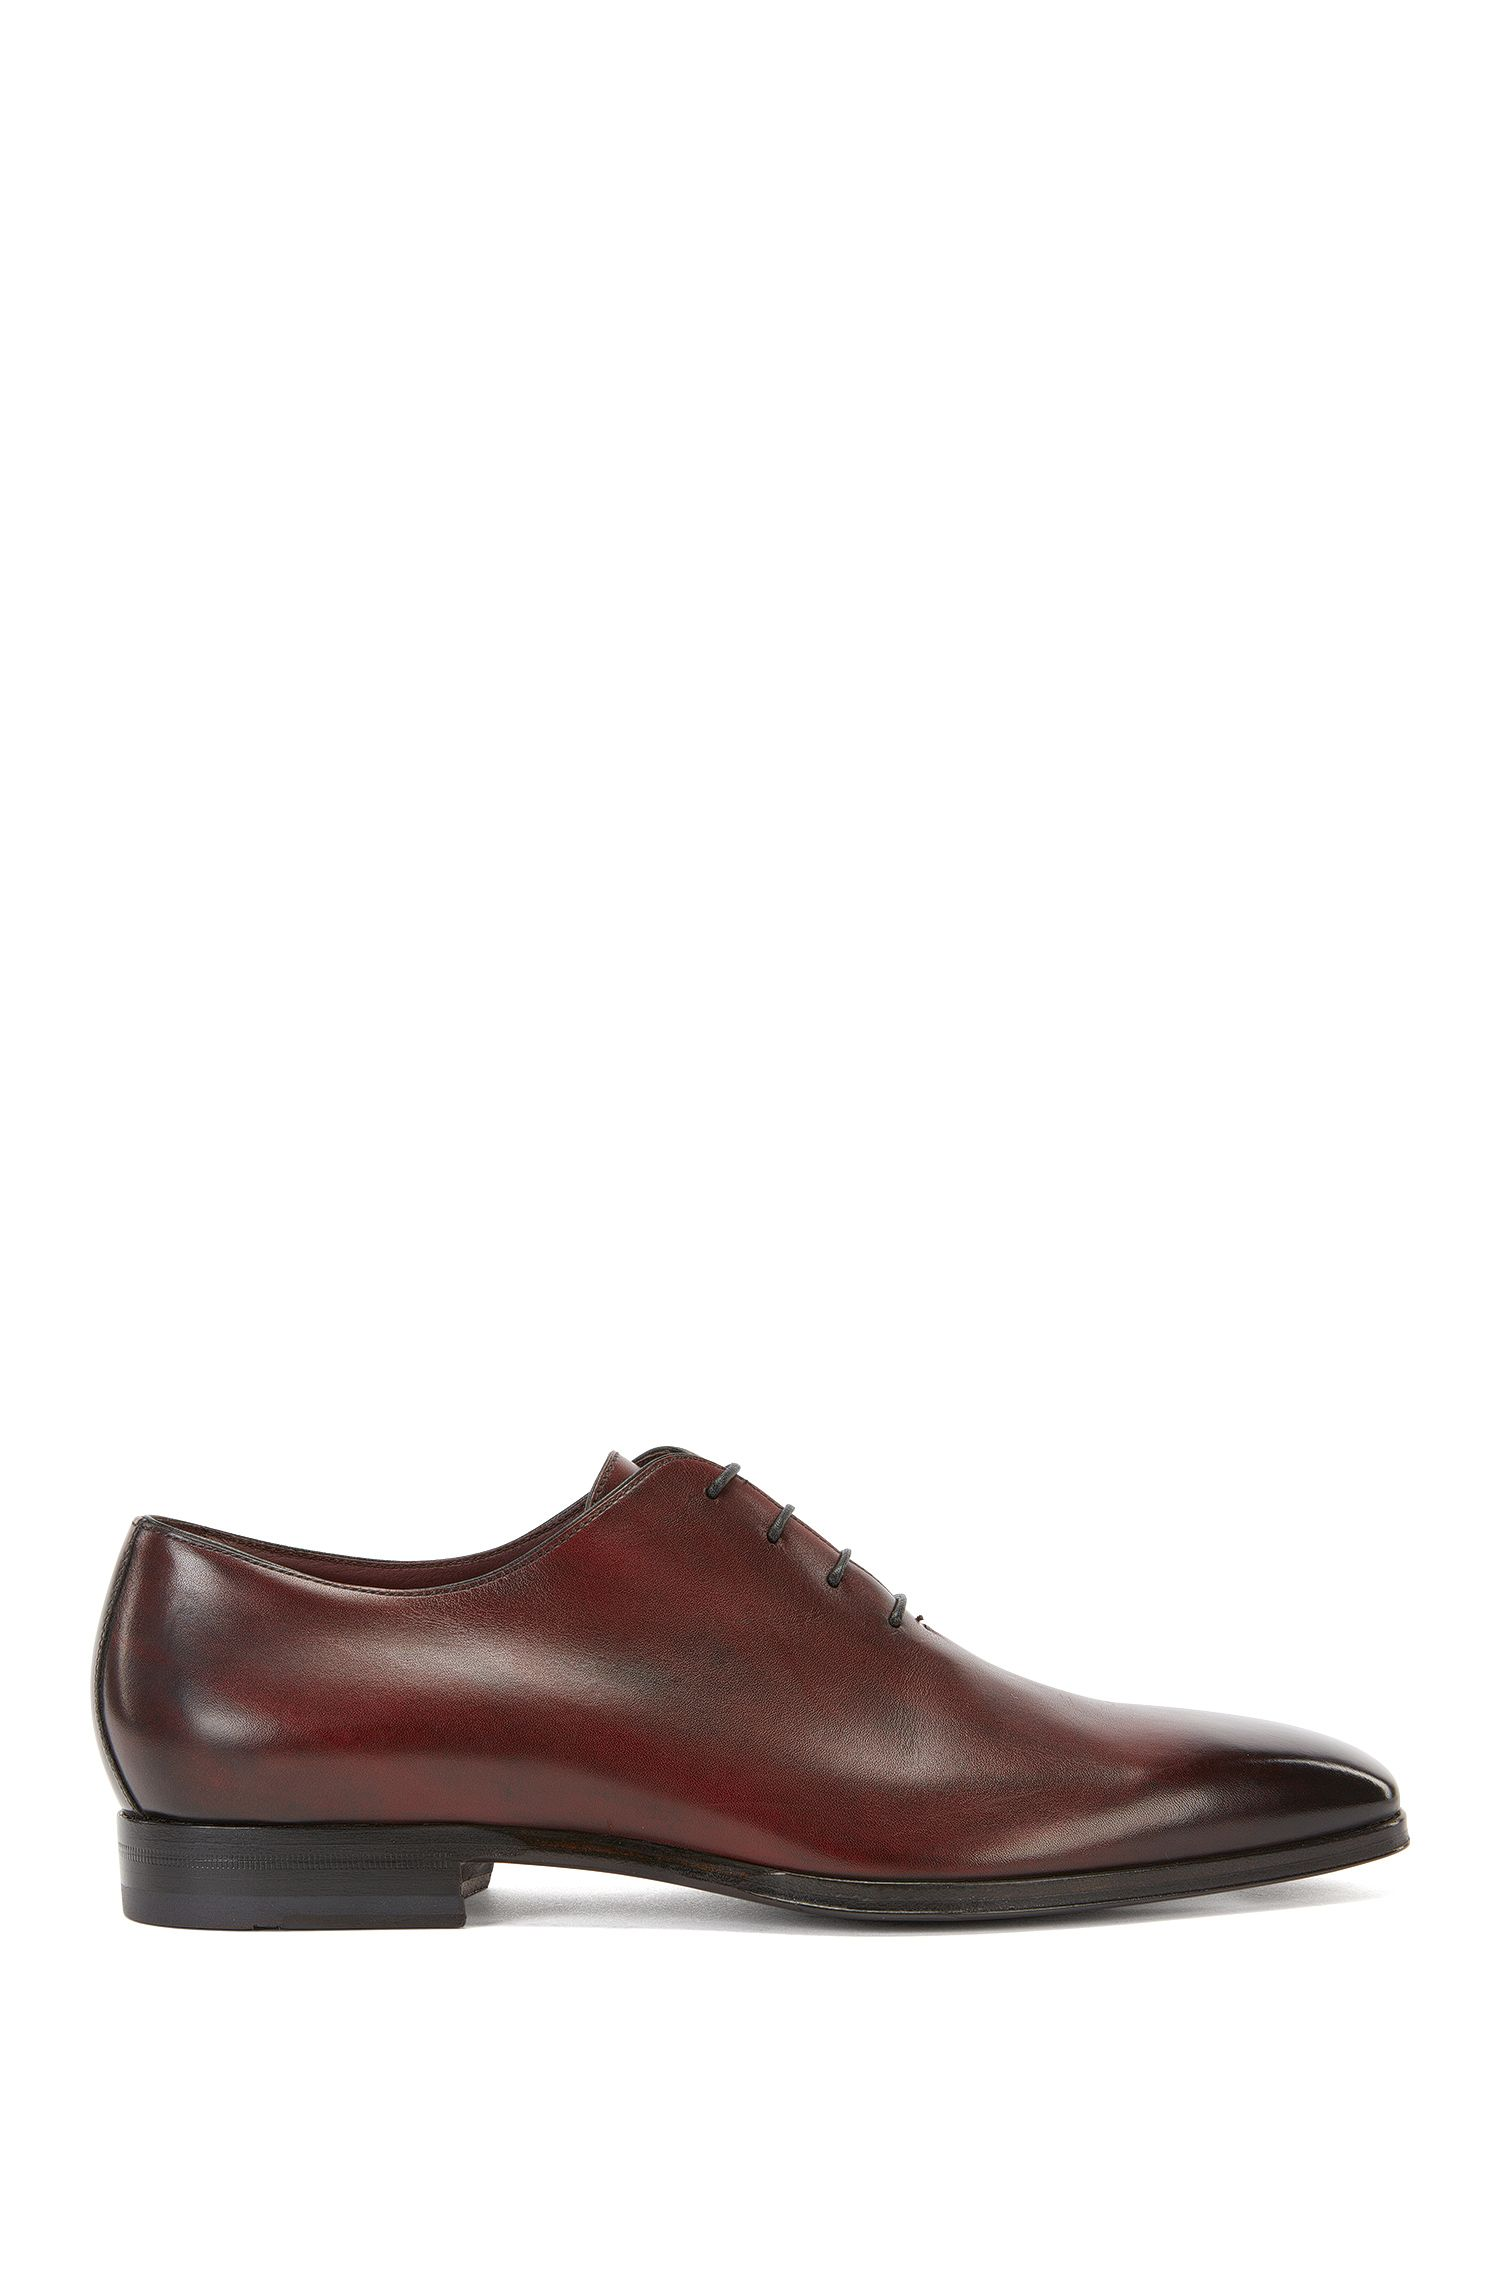 Scarpe Oxford BOSS Tailored in pelle brunita